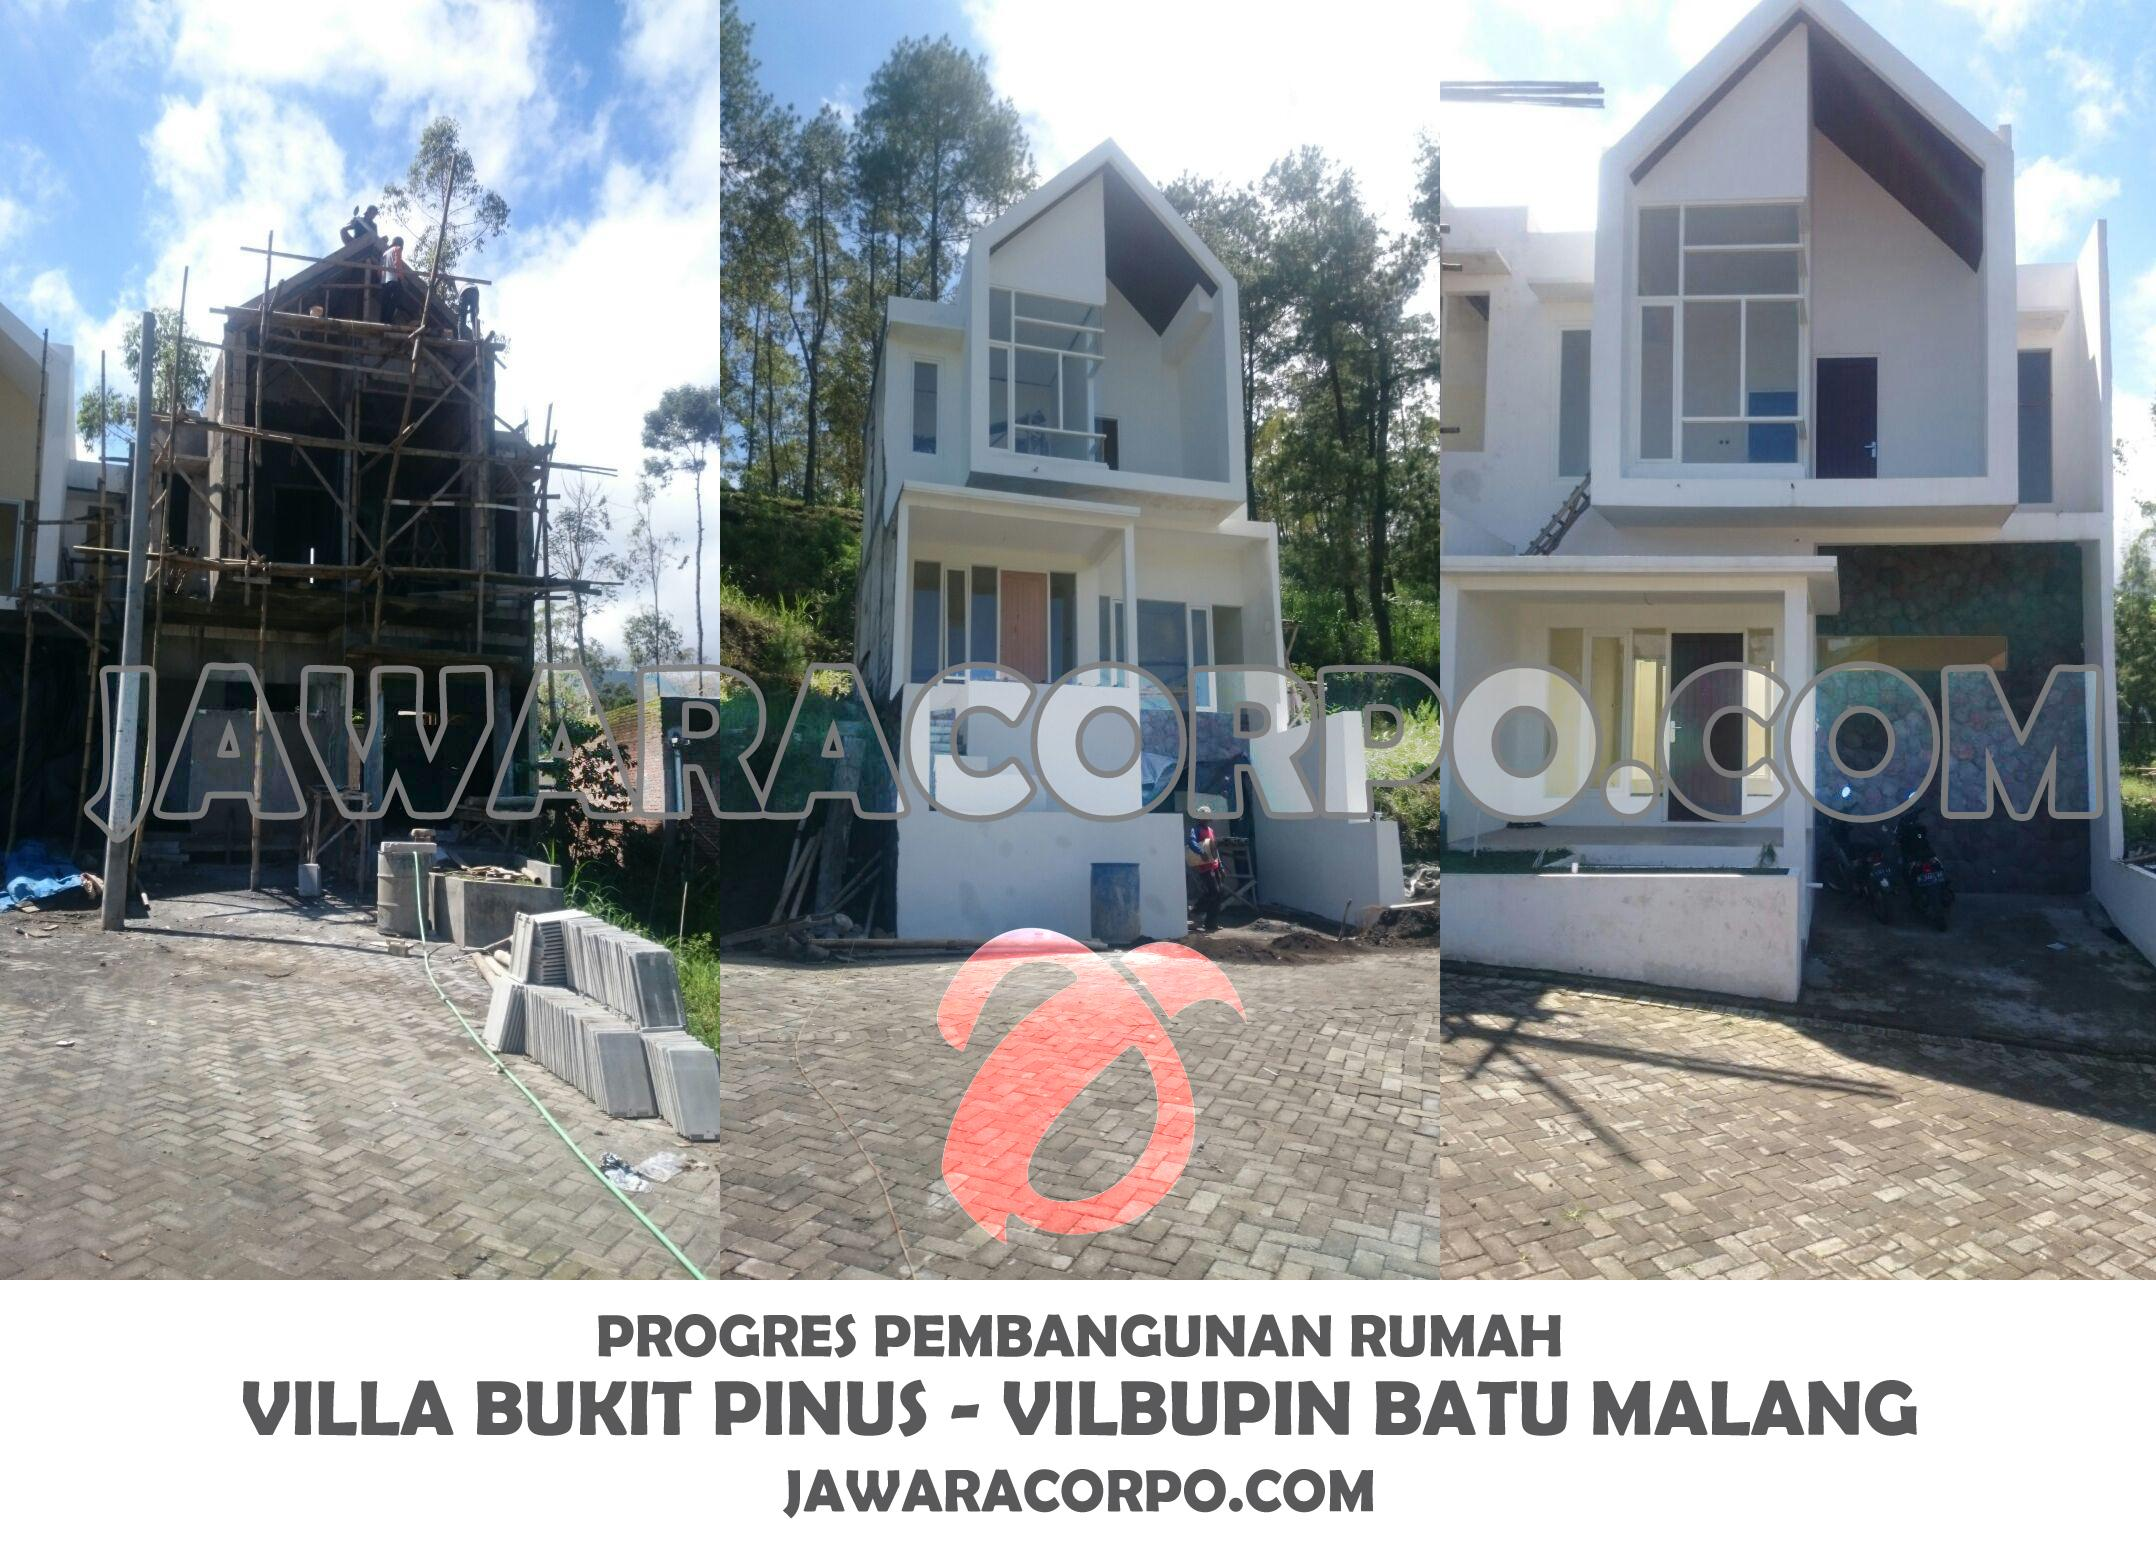 ON PROGRES VILLA BUKIT PINUS JANUARI 2018